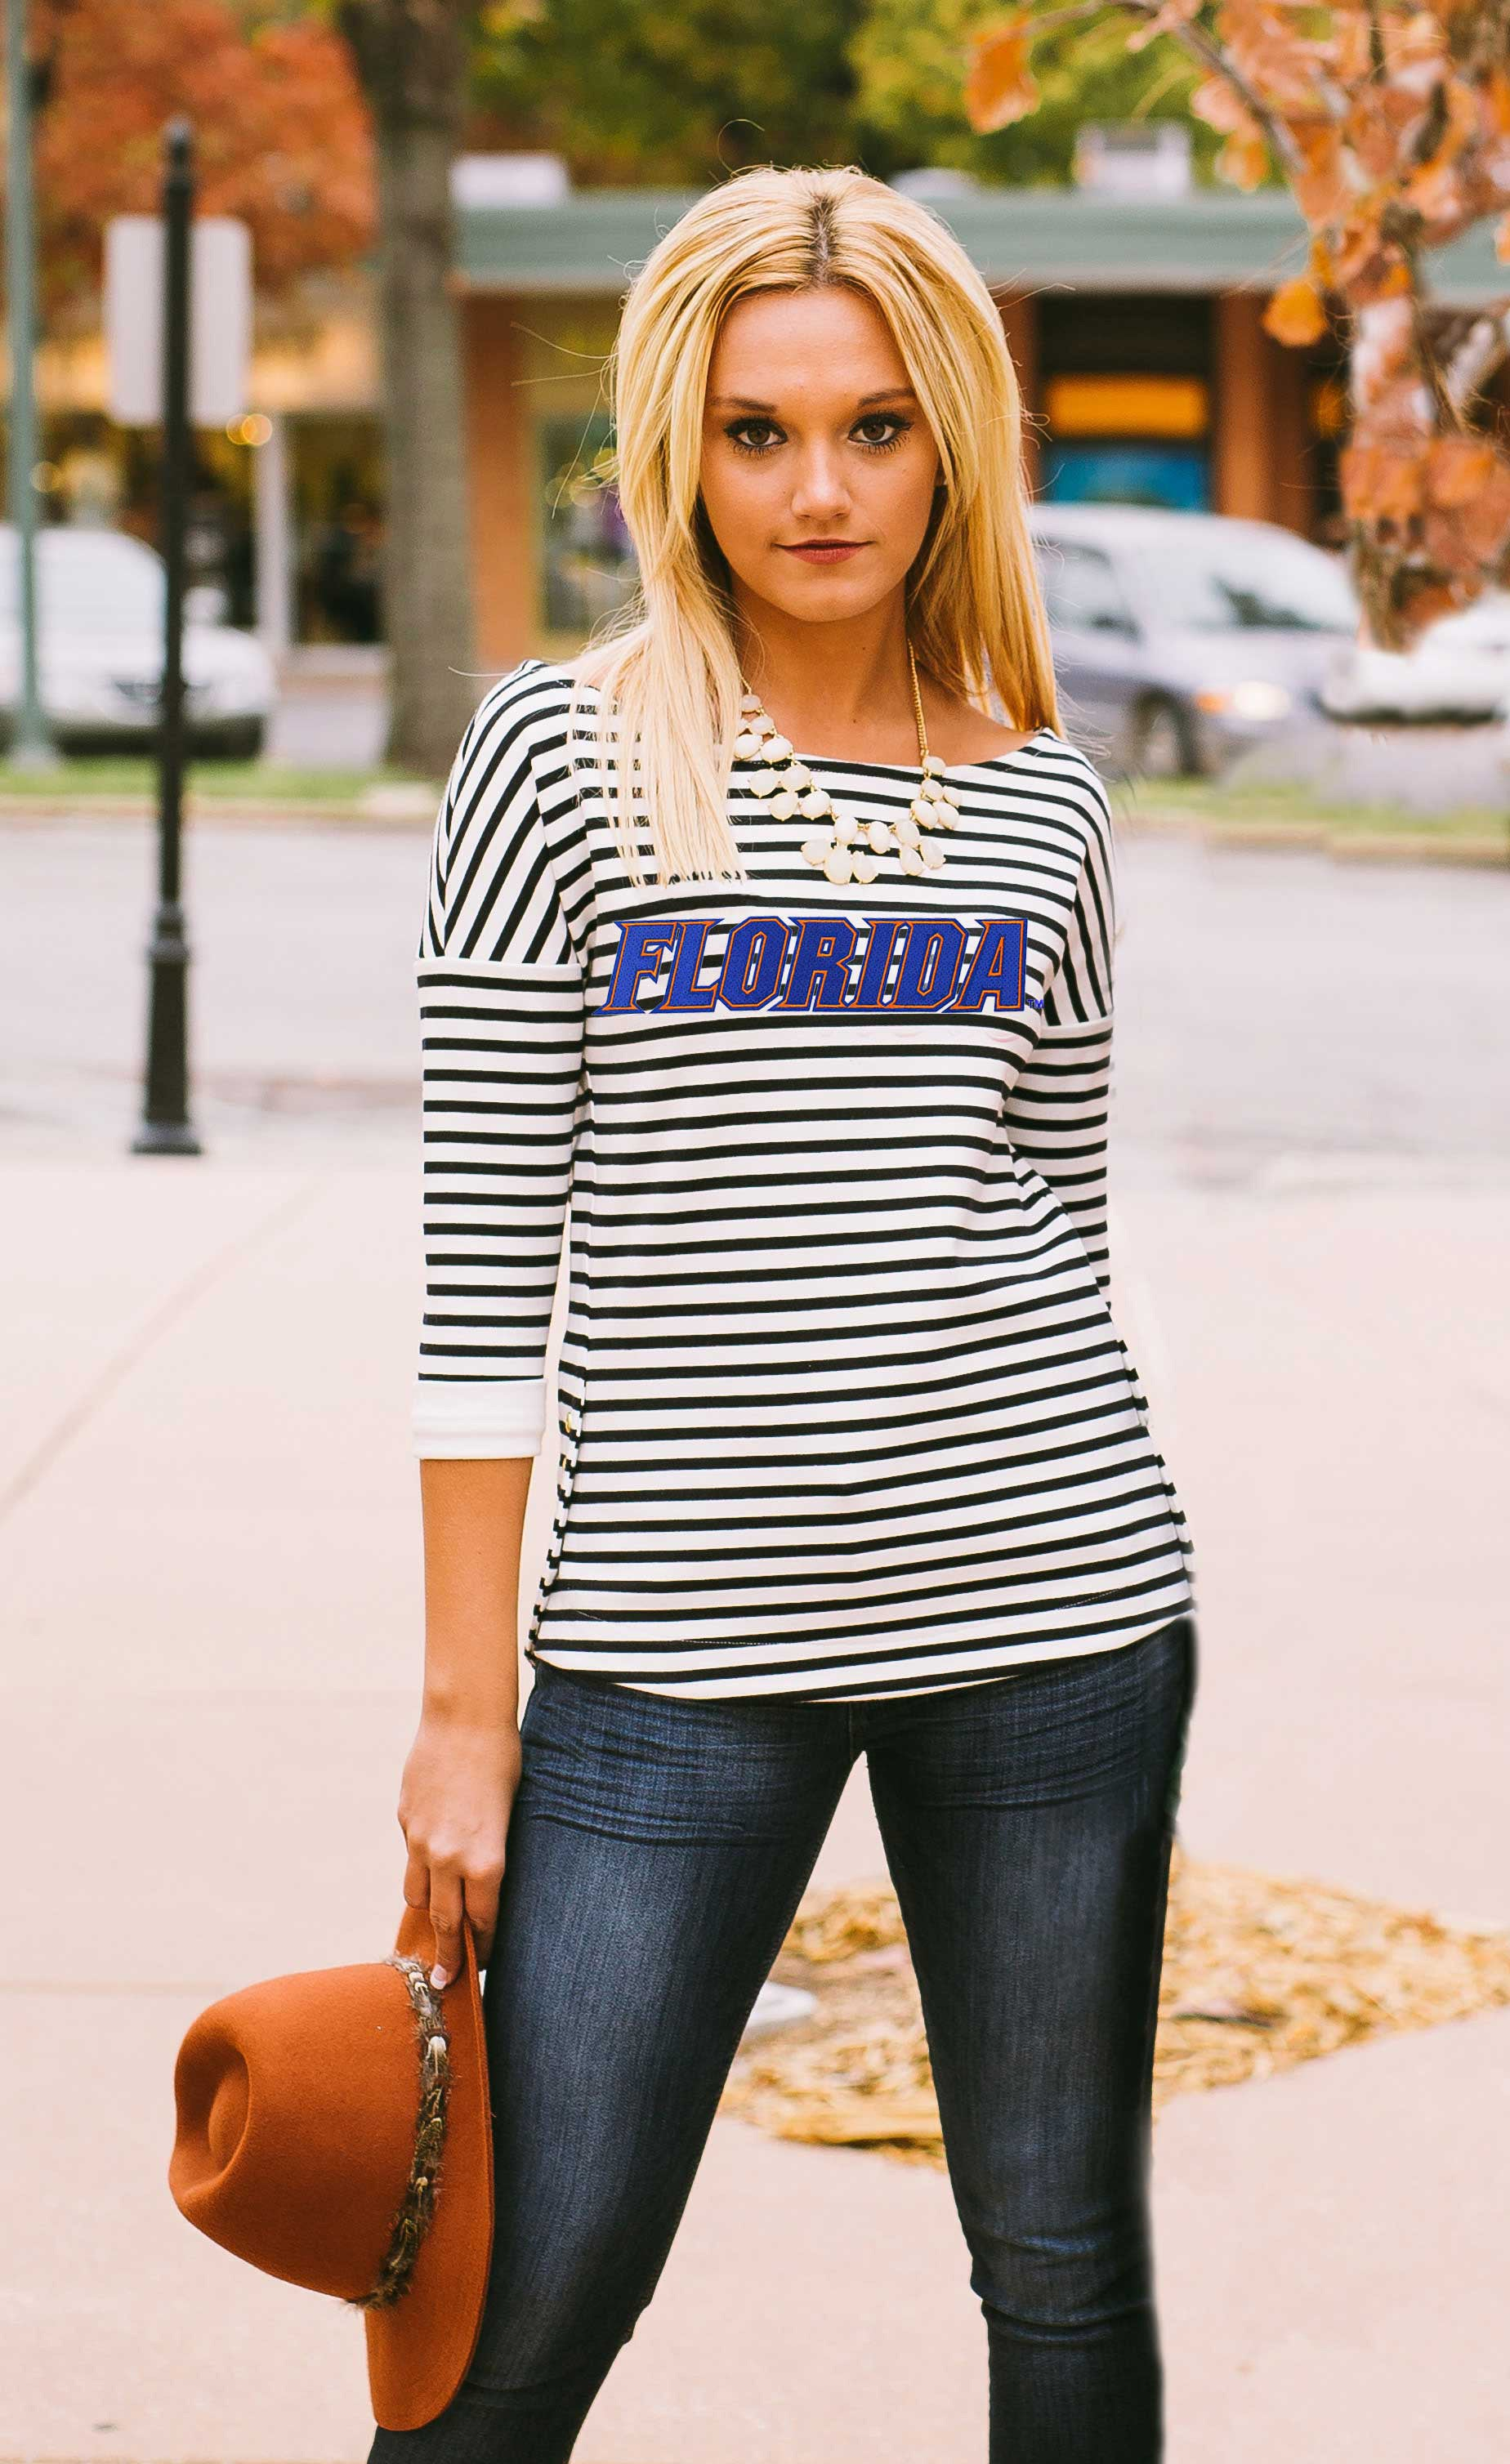 Florida Gators Side Button Top Tee Game Day Couture - Bows and Arrows FSU Seminoles and UF Gators Women's Game Day Dresses and Apparel